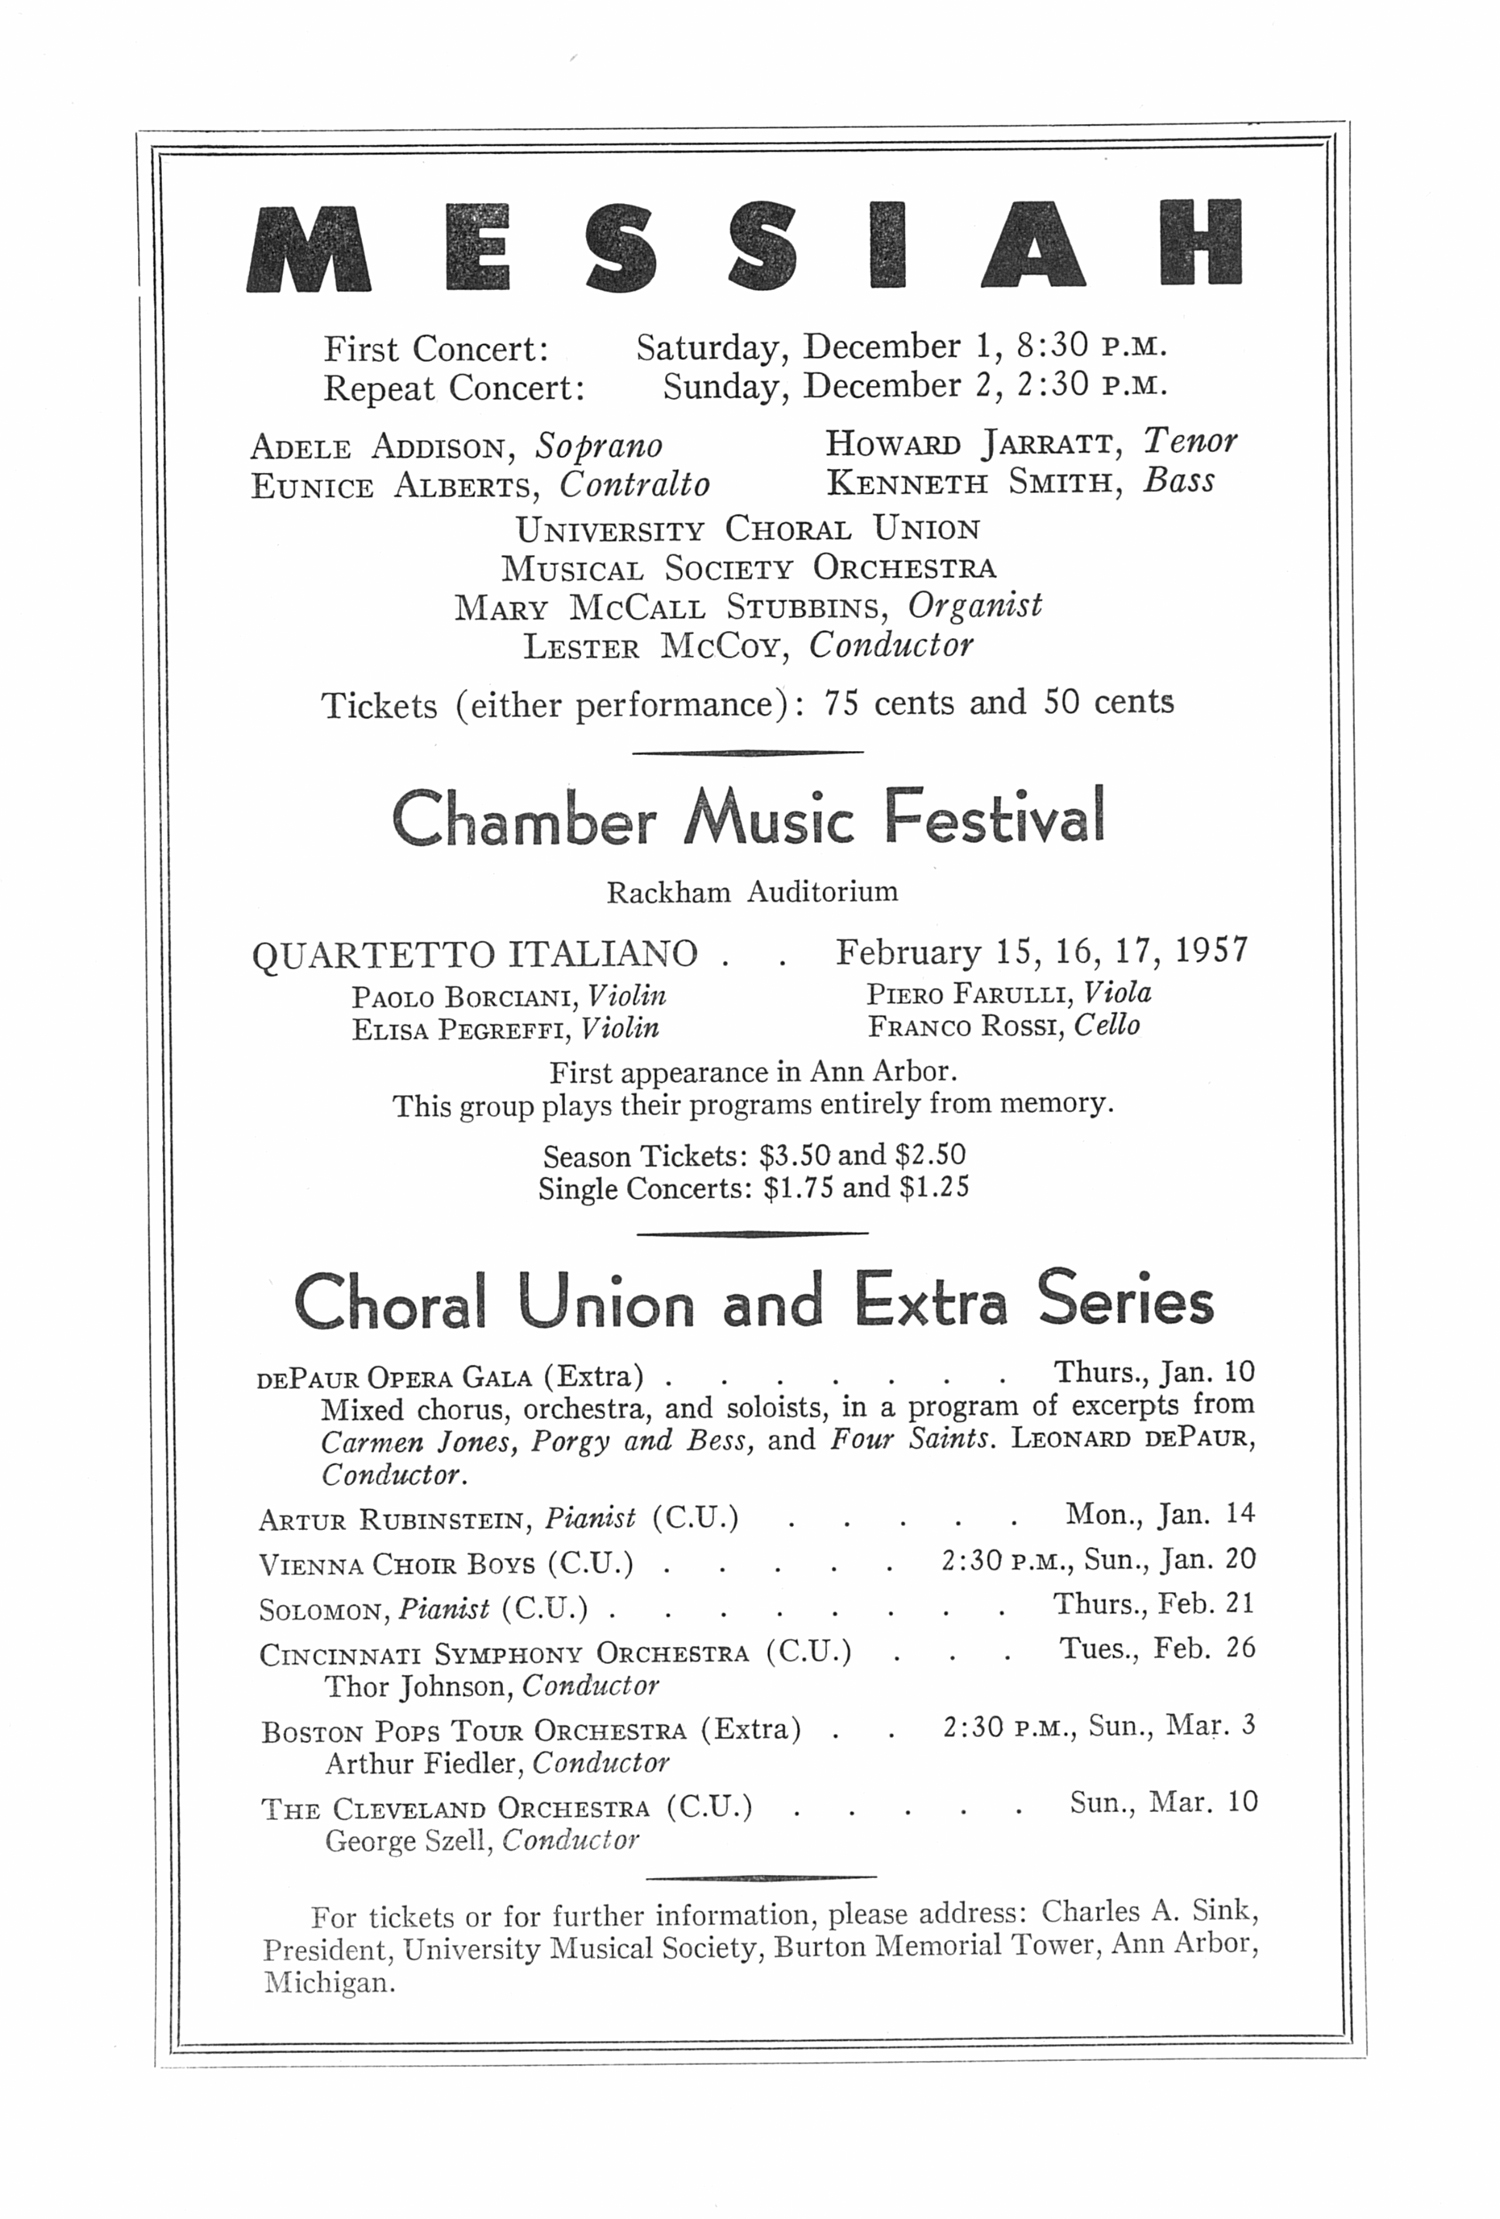 UMS Concert Program, November 20, 1956: Seventy-seventh Annual Choral Union Concert Series -- Vienna Phillharmonic Orchestra image